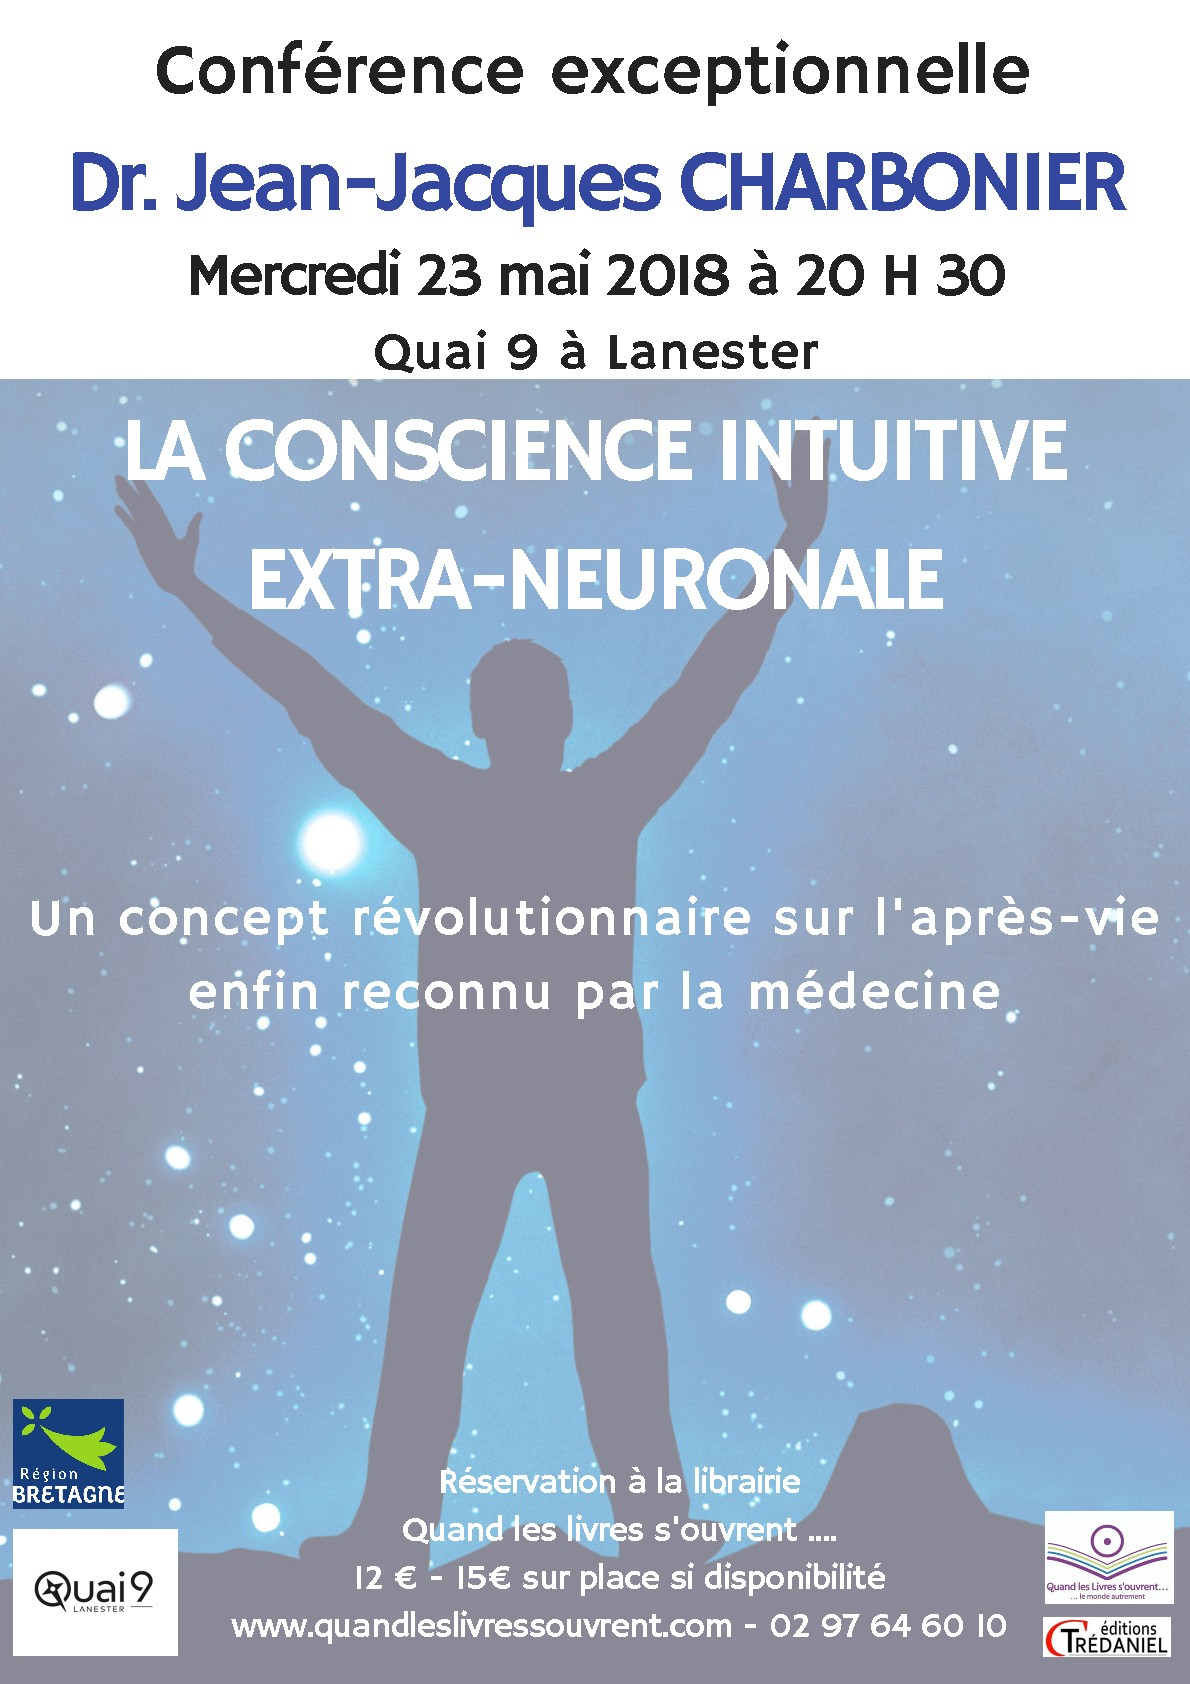 CONFERENCE ...LA CONSCIENCE INTUITIVE NEURONALE